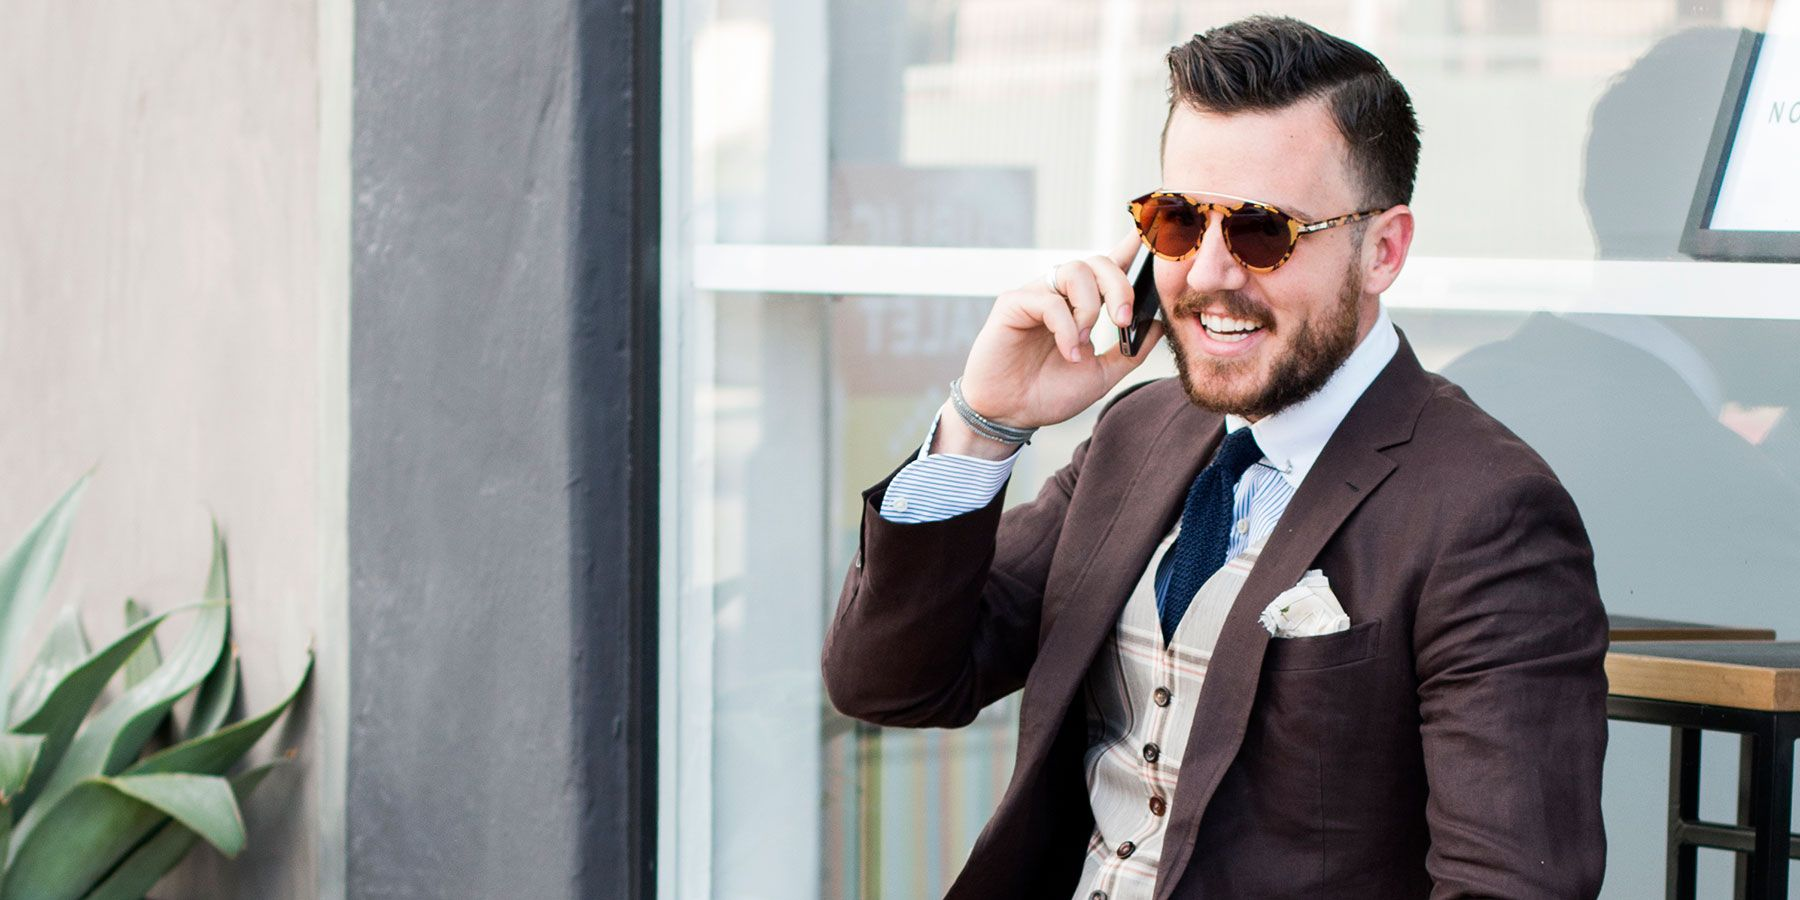 Shop custom luxury suits, shirts, outerwear and tuxedos. Perfect fits,  quality craftsmanship, and personalized style advice from the comfort of  your home.